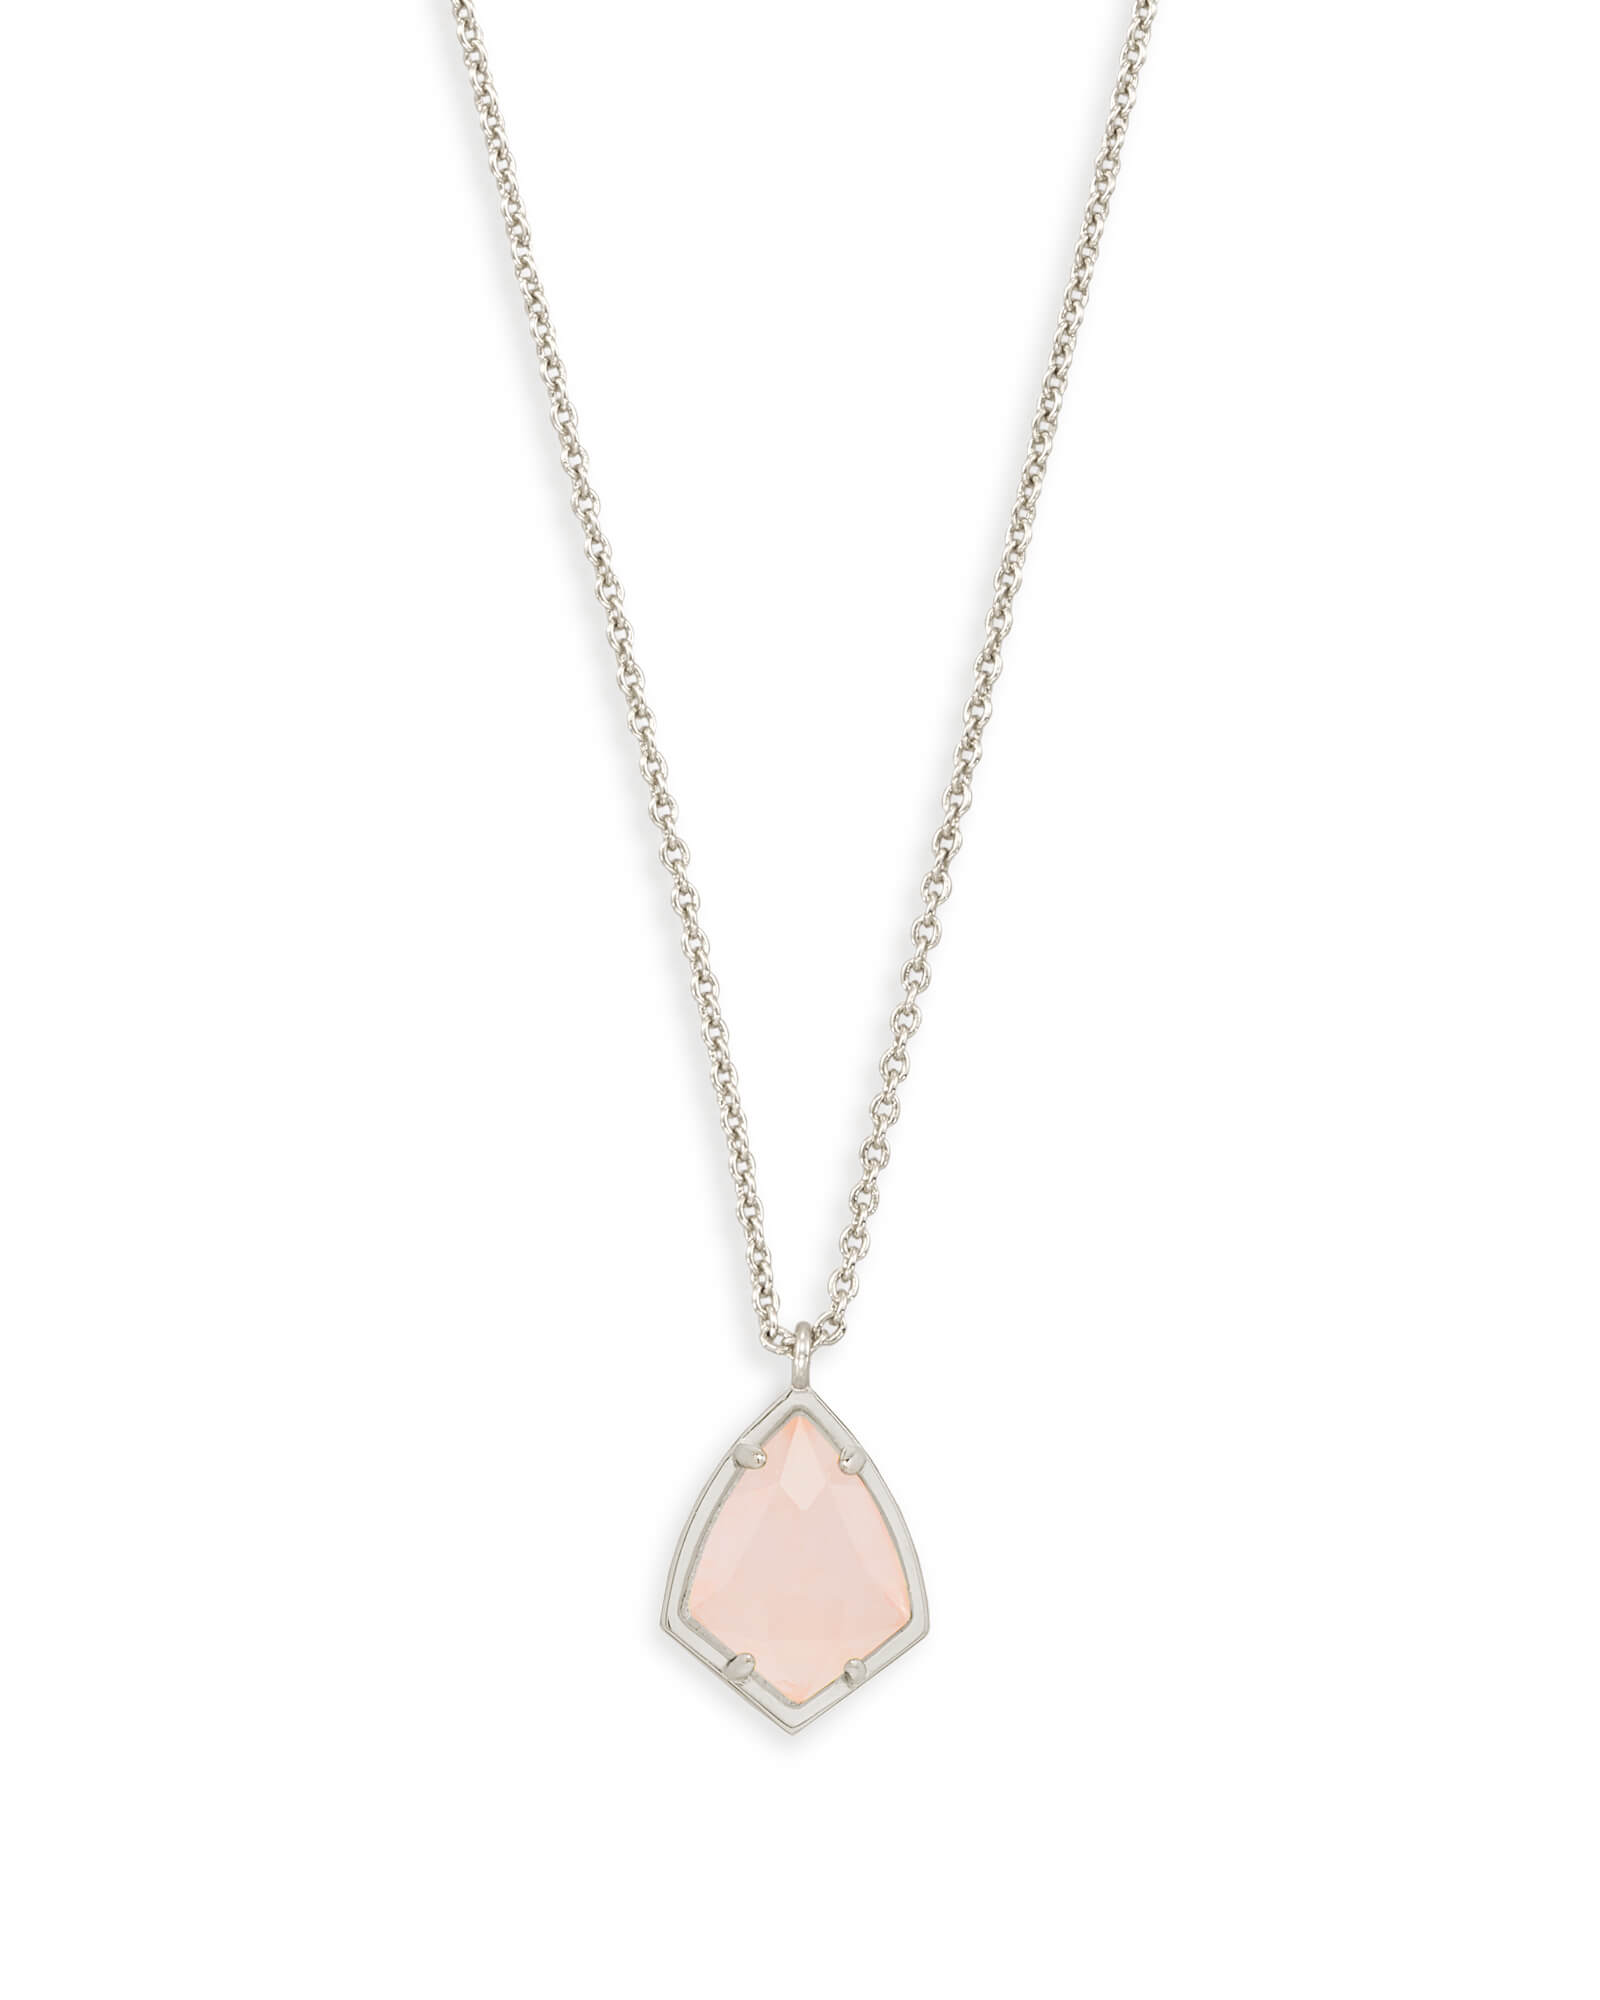 Cory Silver Pendant Necklace in Rose Quartz